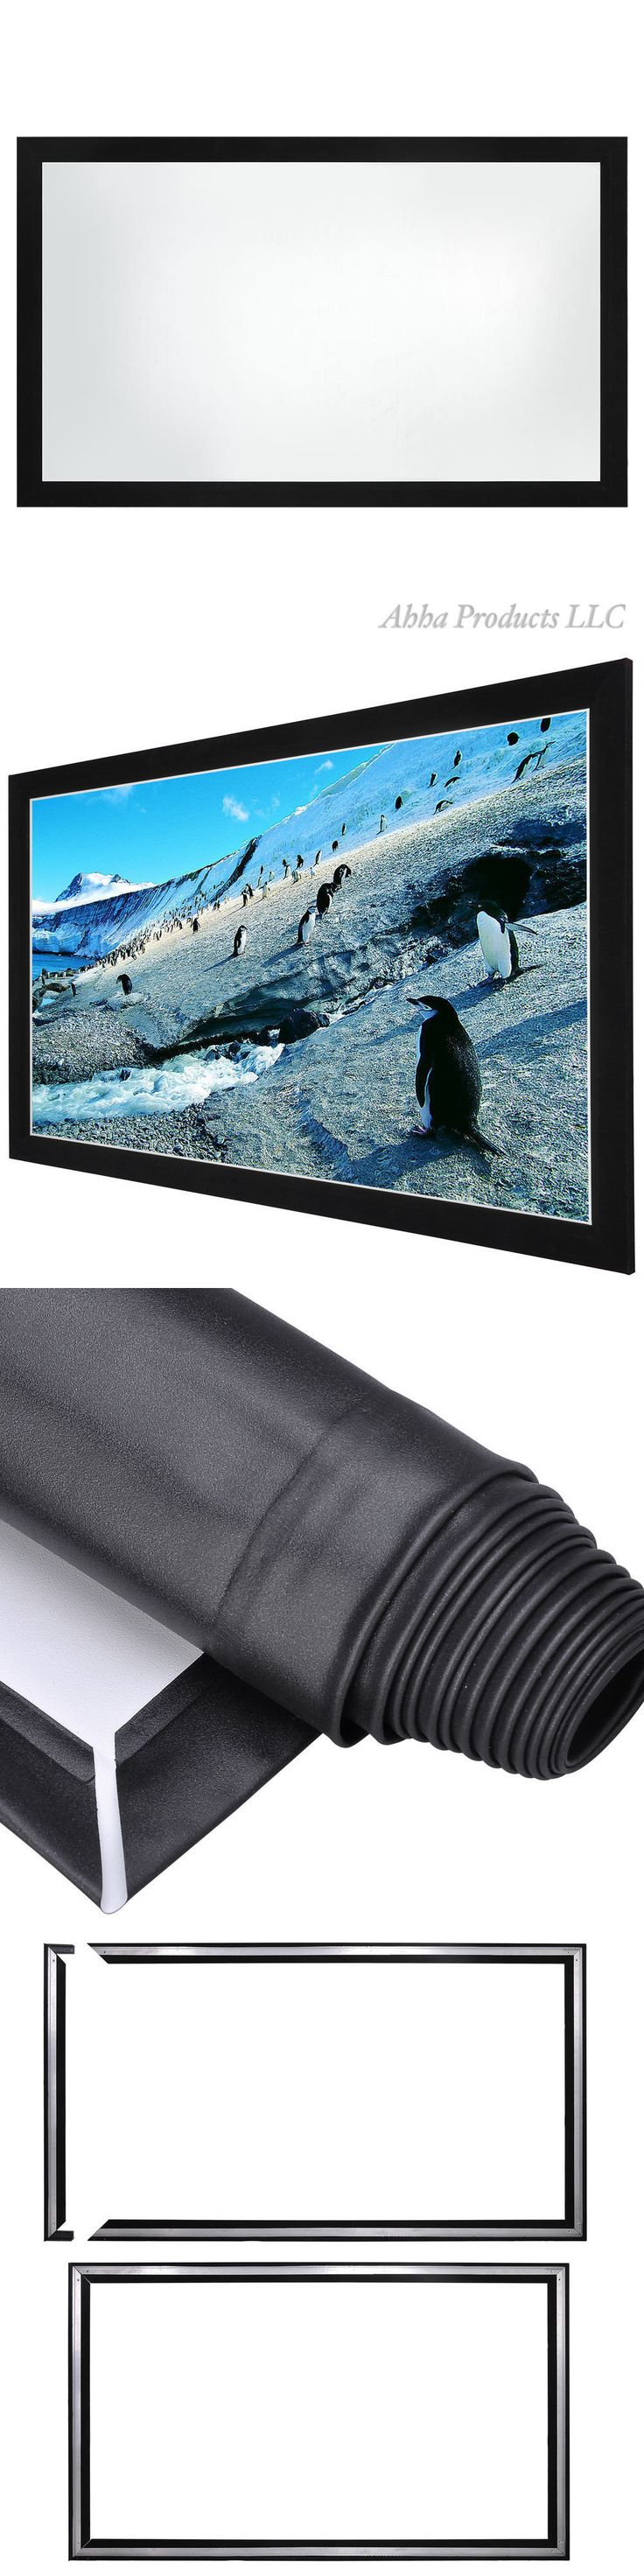 Projection Screens and Material: 92 Projection Screen 80X45 16:9 Fixed Frame Home Theater Movie Tv Projector BUY IT NOW ONLY: $164.99